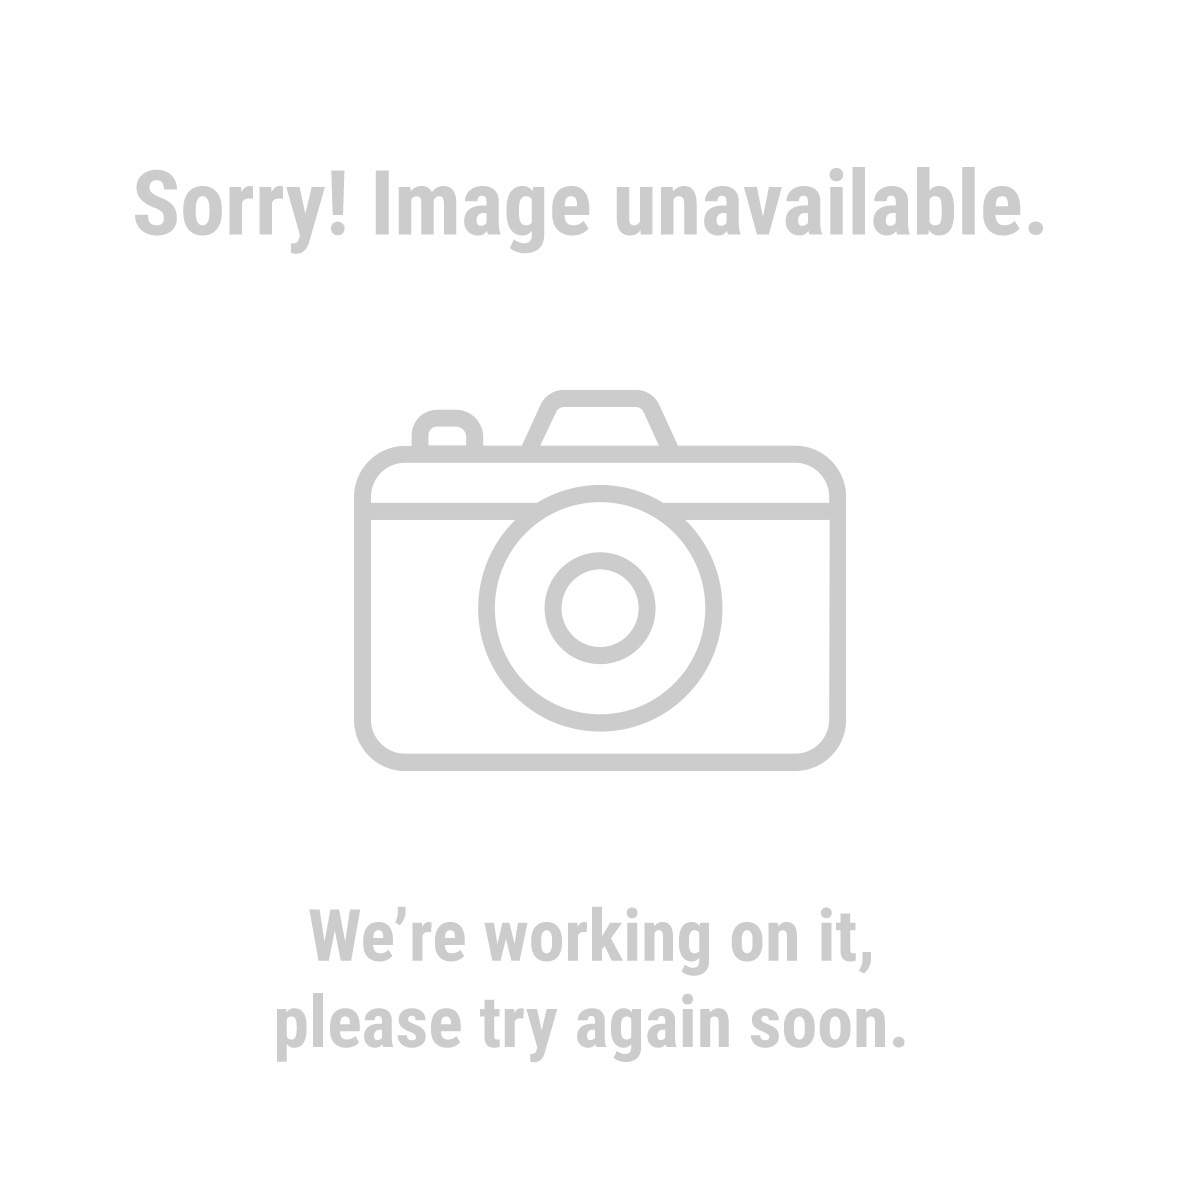 Haul-Master® 60658 3/8 in. x 14 ft. Grade 43 Towing Chain